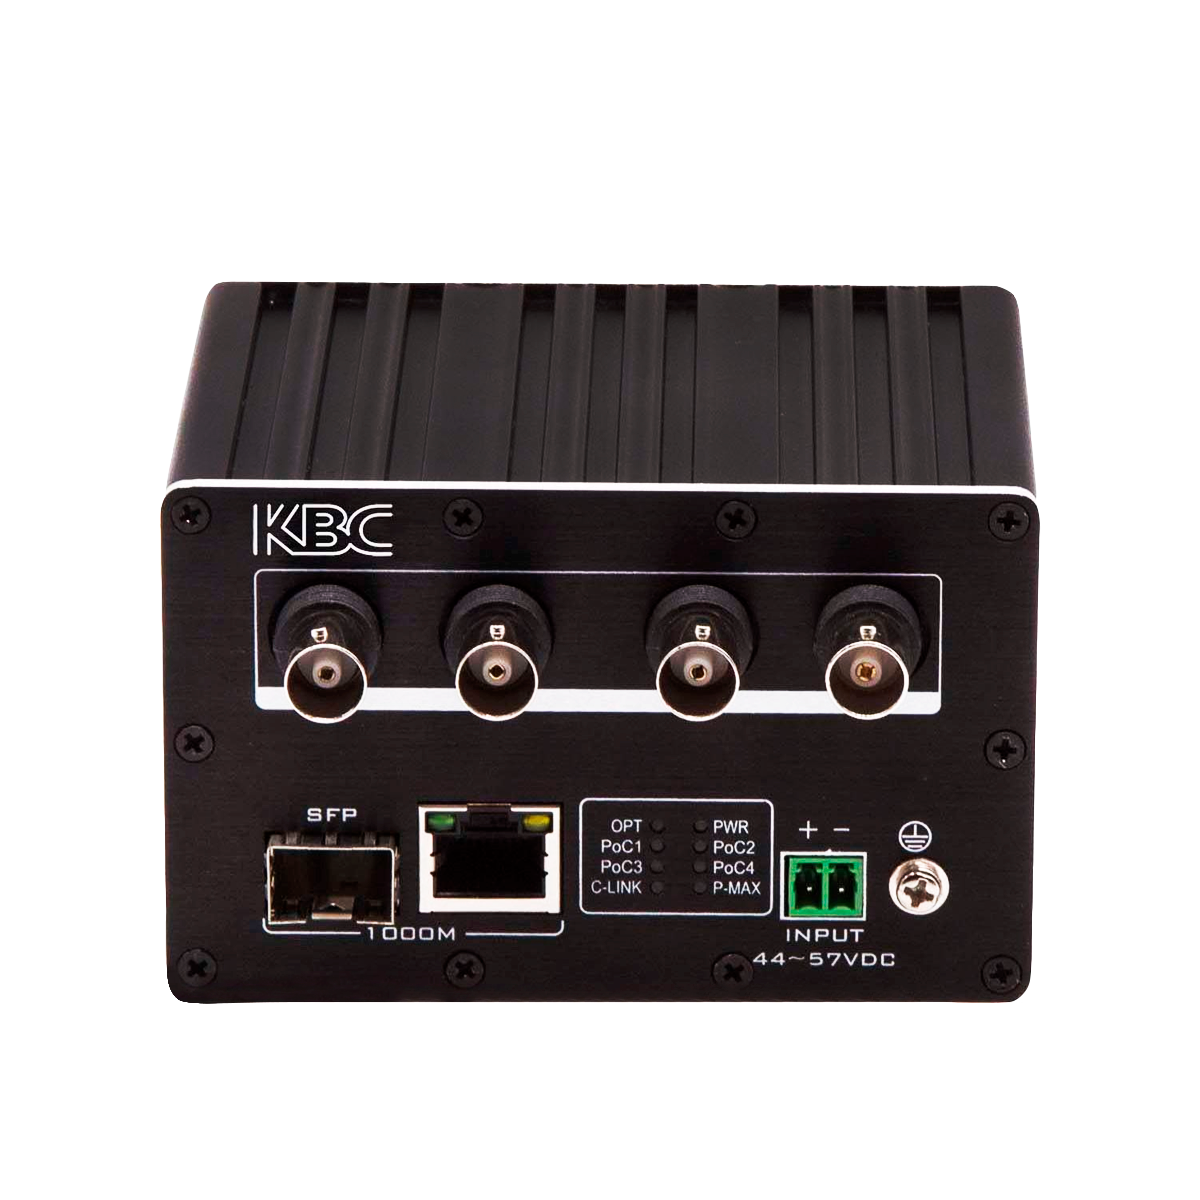 he KBC EECF4-DN1-R is an Ethernet over Coax (EoC) receiver with 4 coax ports with Power Over Coax (PoC) and 1*10/100/1000M Ethernet ports,1*1000Base-FX SFP port